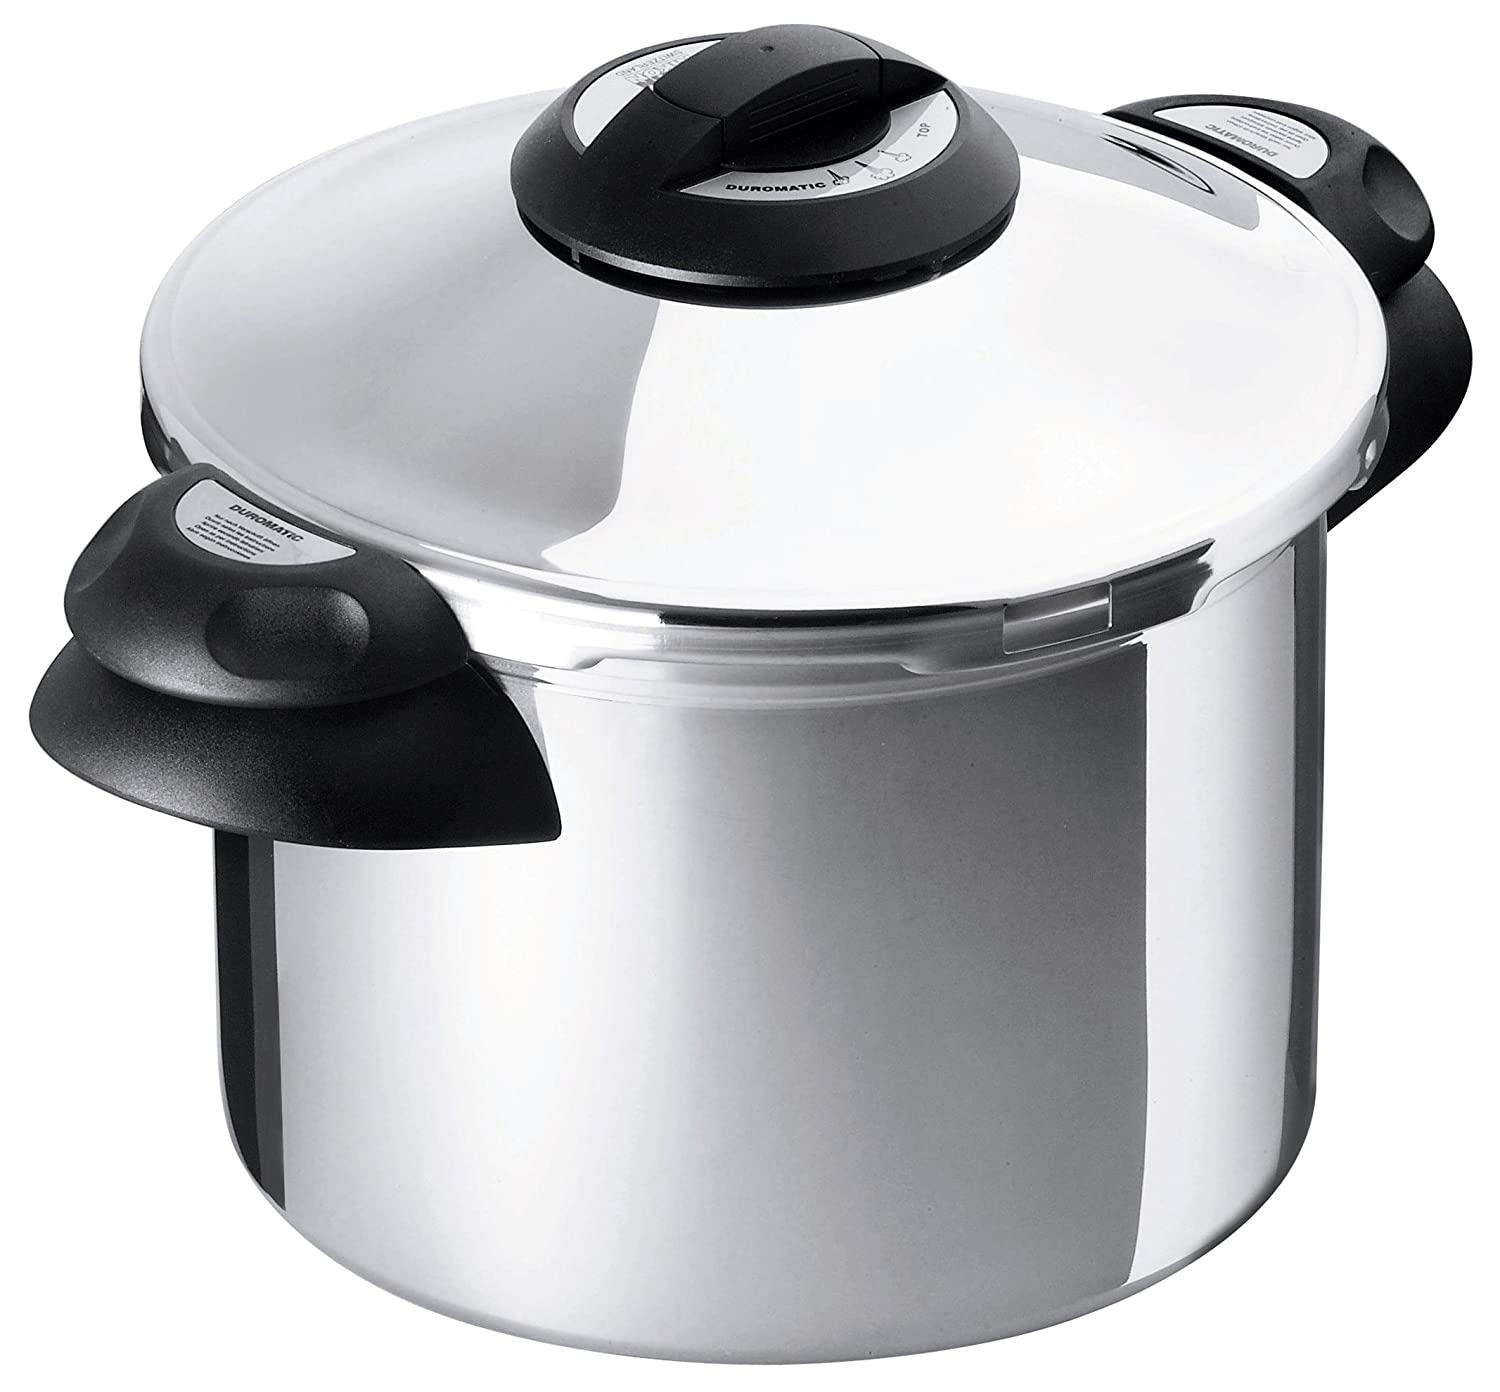 Kuhn Rikon Duromatic Top Pressure Cooker with Side Handle, Ø 24 cm, 6 L, 3762